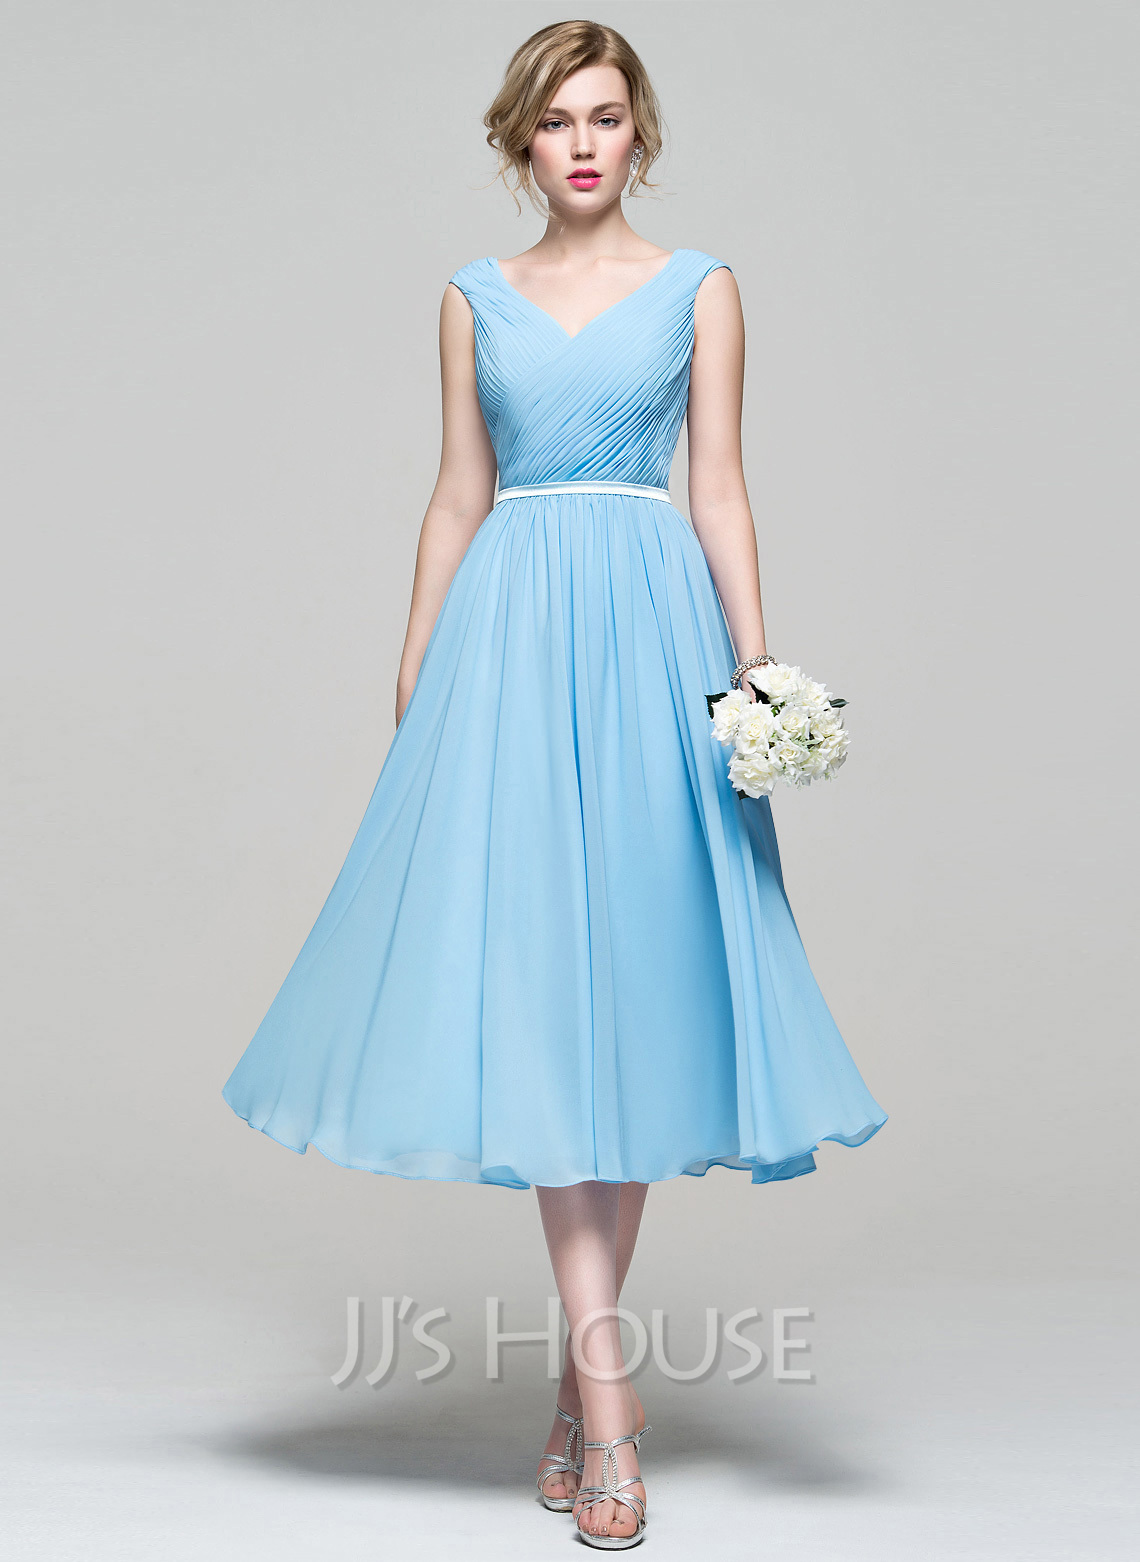 A-Line V-neck Tea-Length Chiffon Bridesmaid Dress With Ruffle. Loading zoom b801b6efe